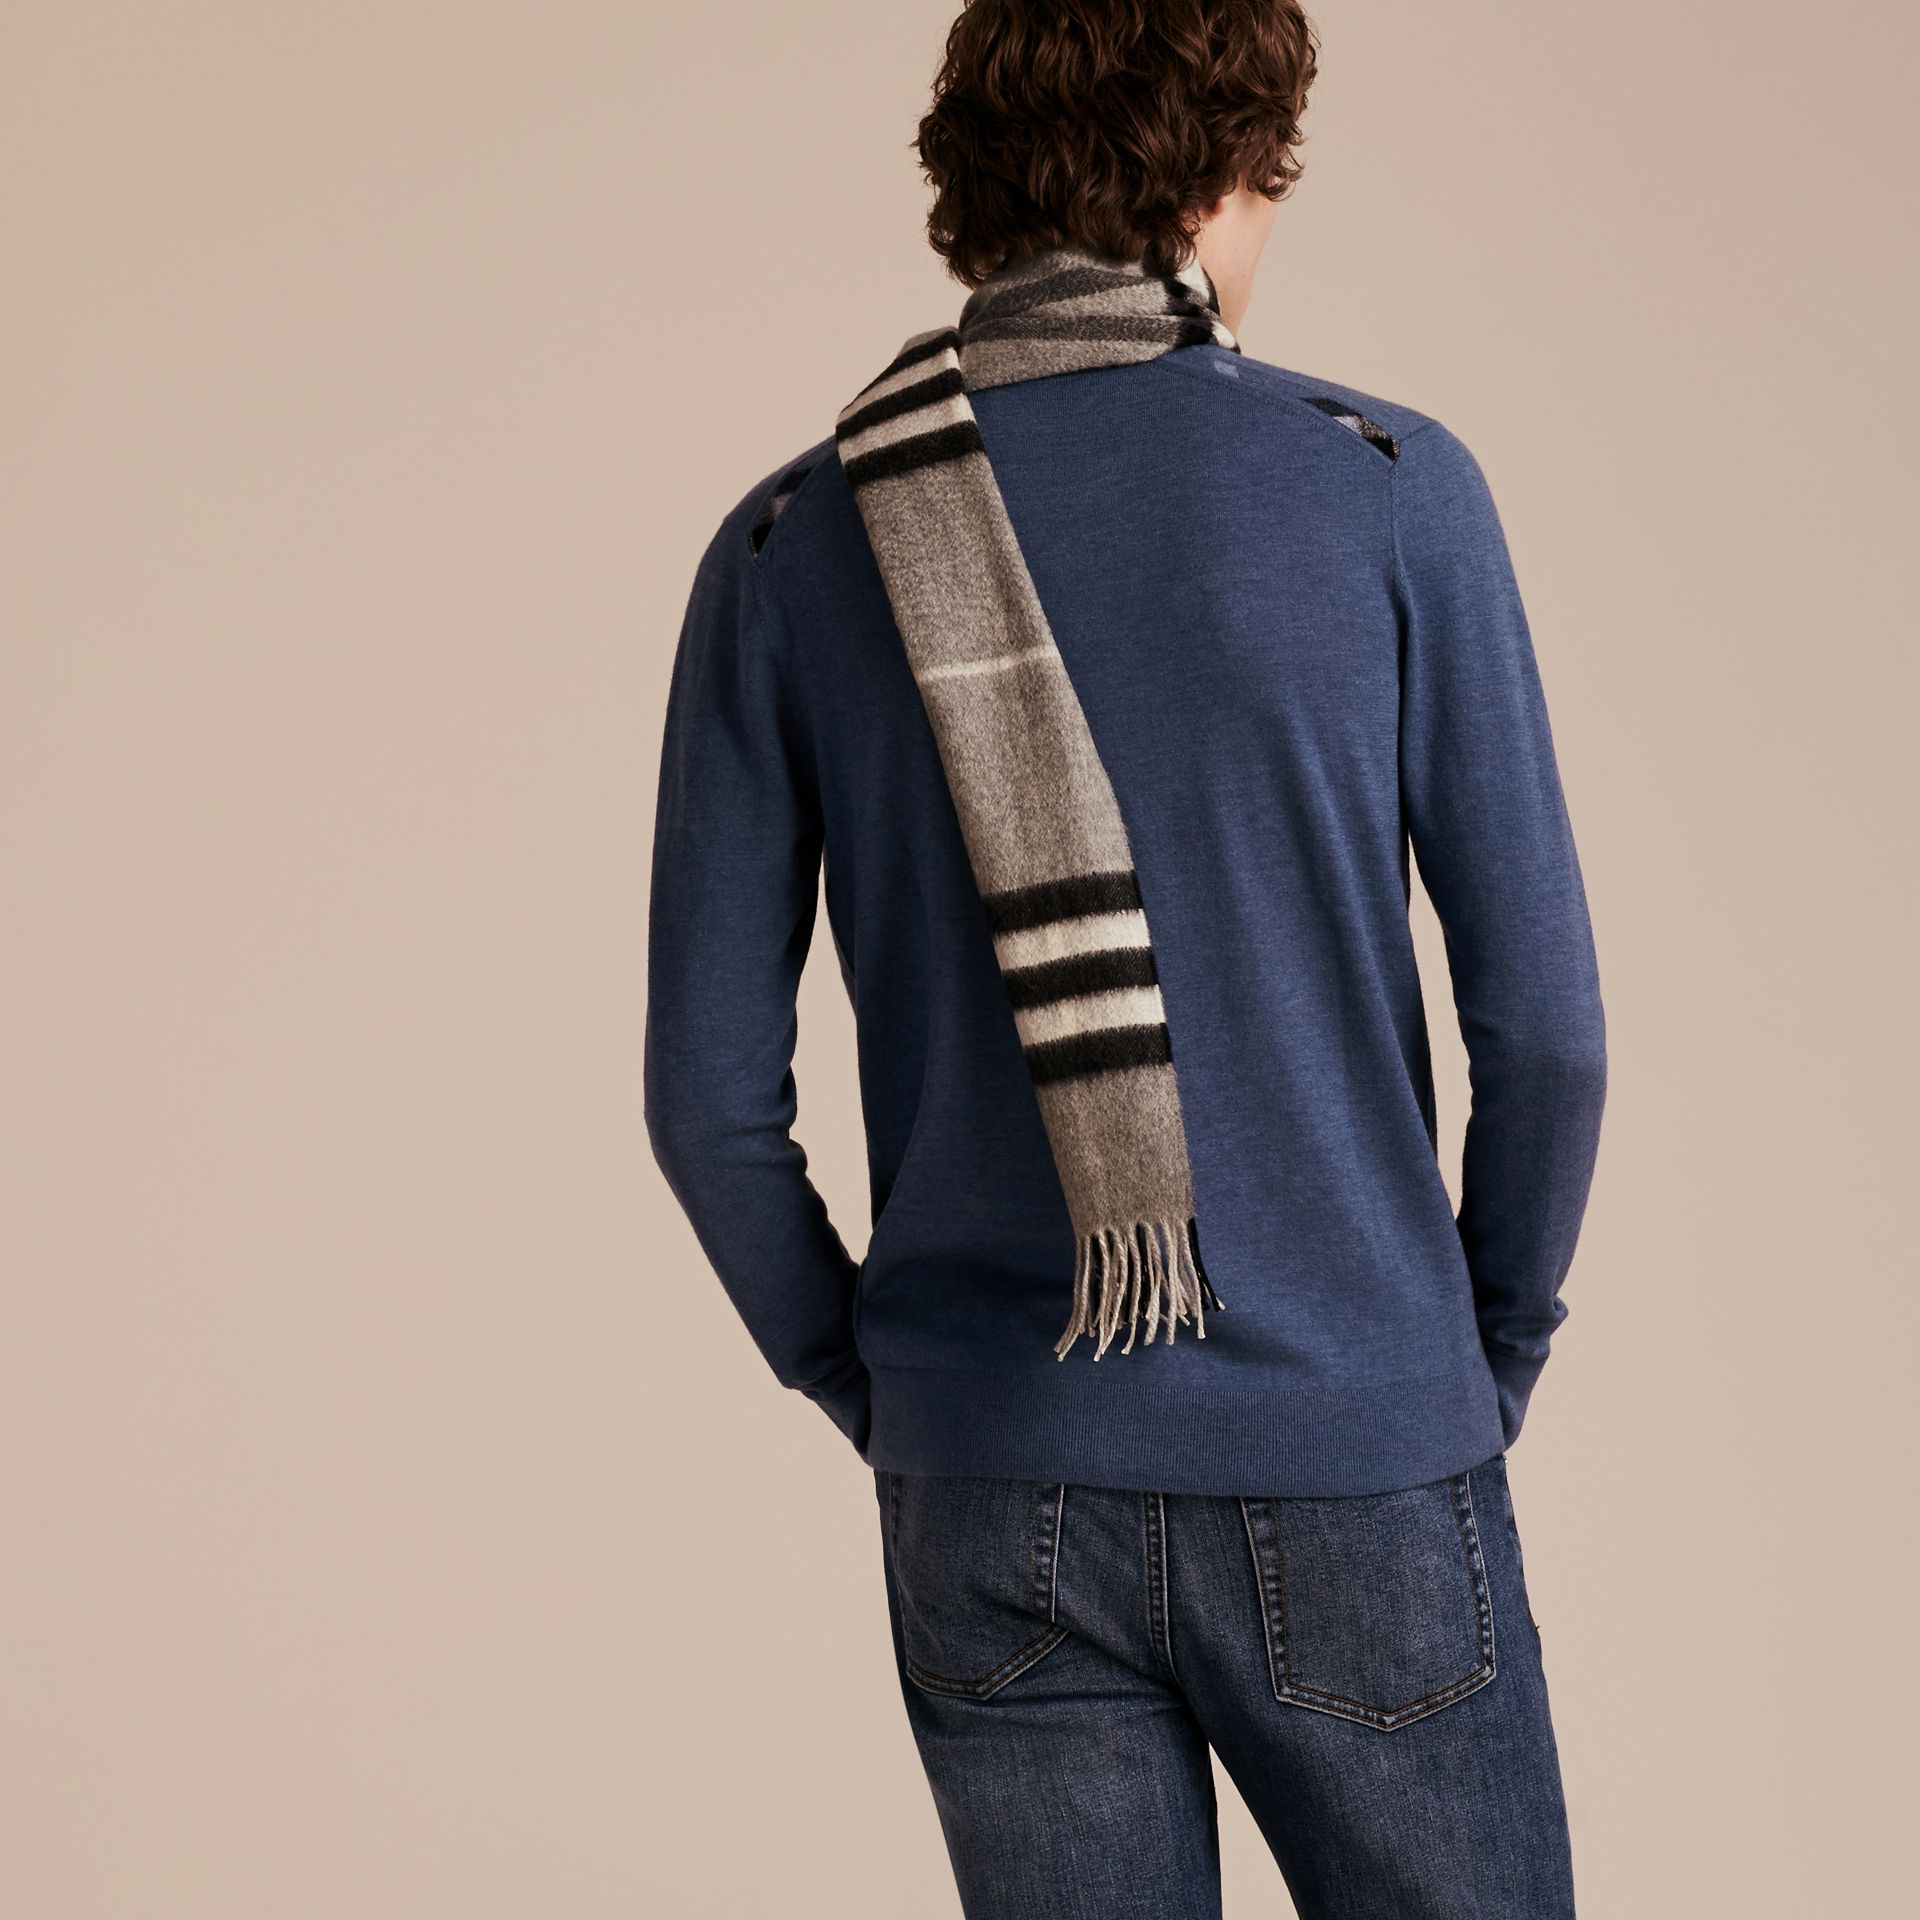 Dusty blue Lightweight Crew Neck Cashmere Sweater with Check Trim Dusty Blue - gallery image 3